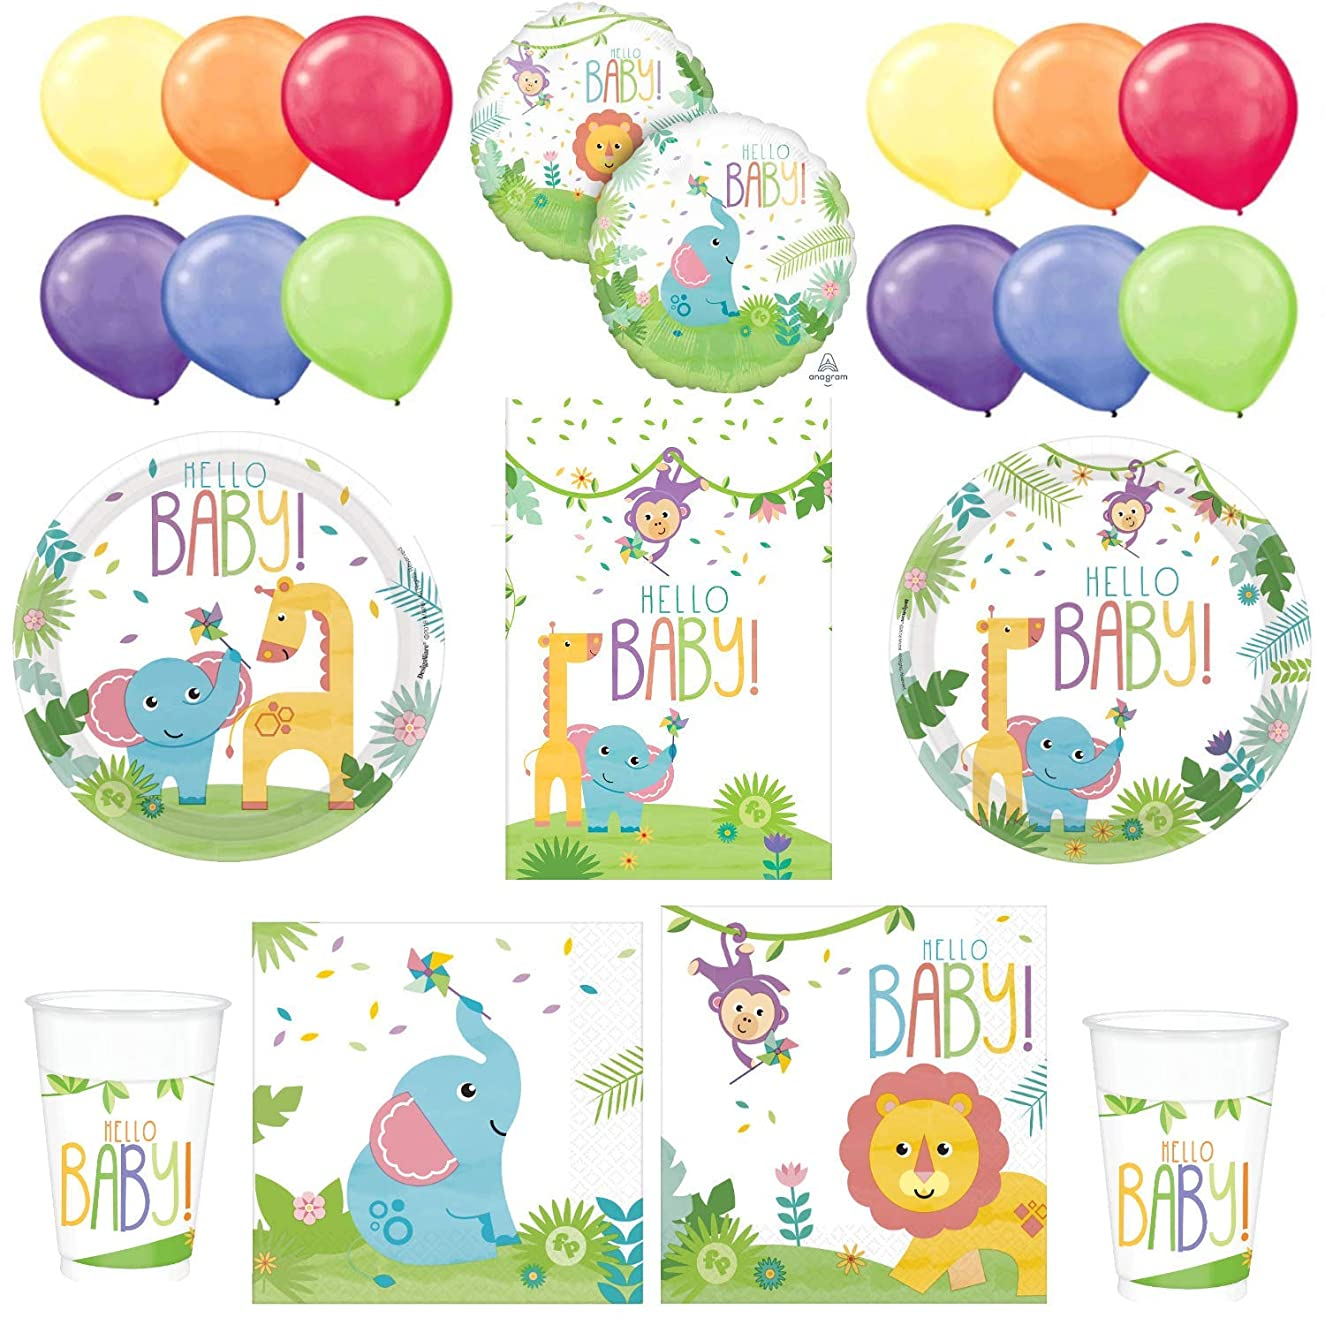 Fisher Pricea Hello Baby Shower Kit: Plates, Napkins, Tablecloth, Cups, a Foil Balloon and a Package of Balloons - Unisex, Boy or Girl